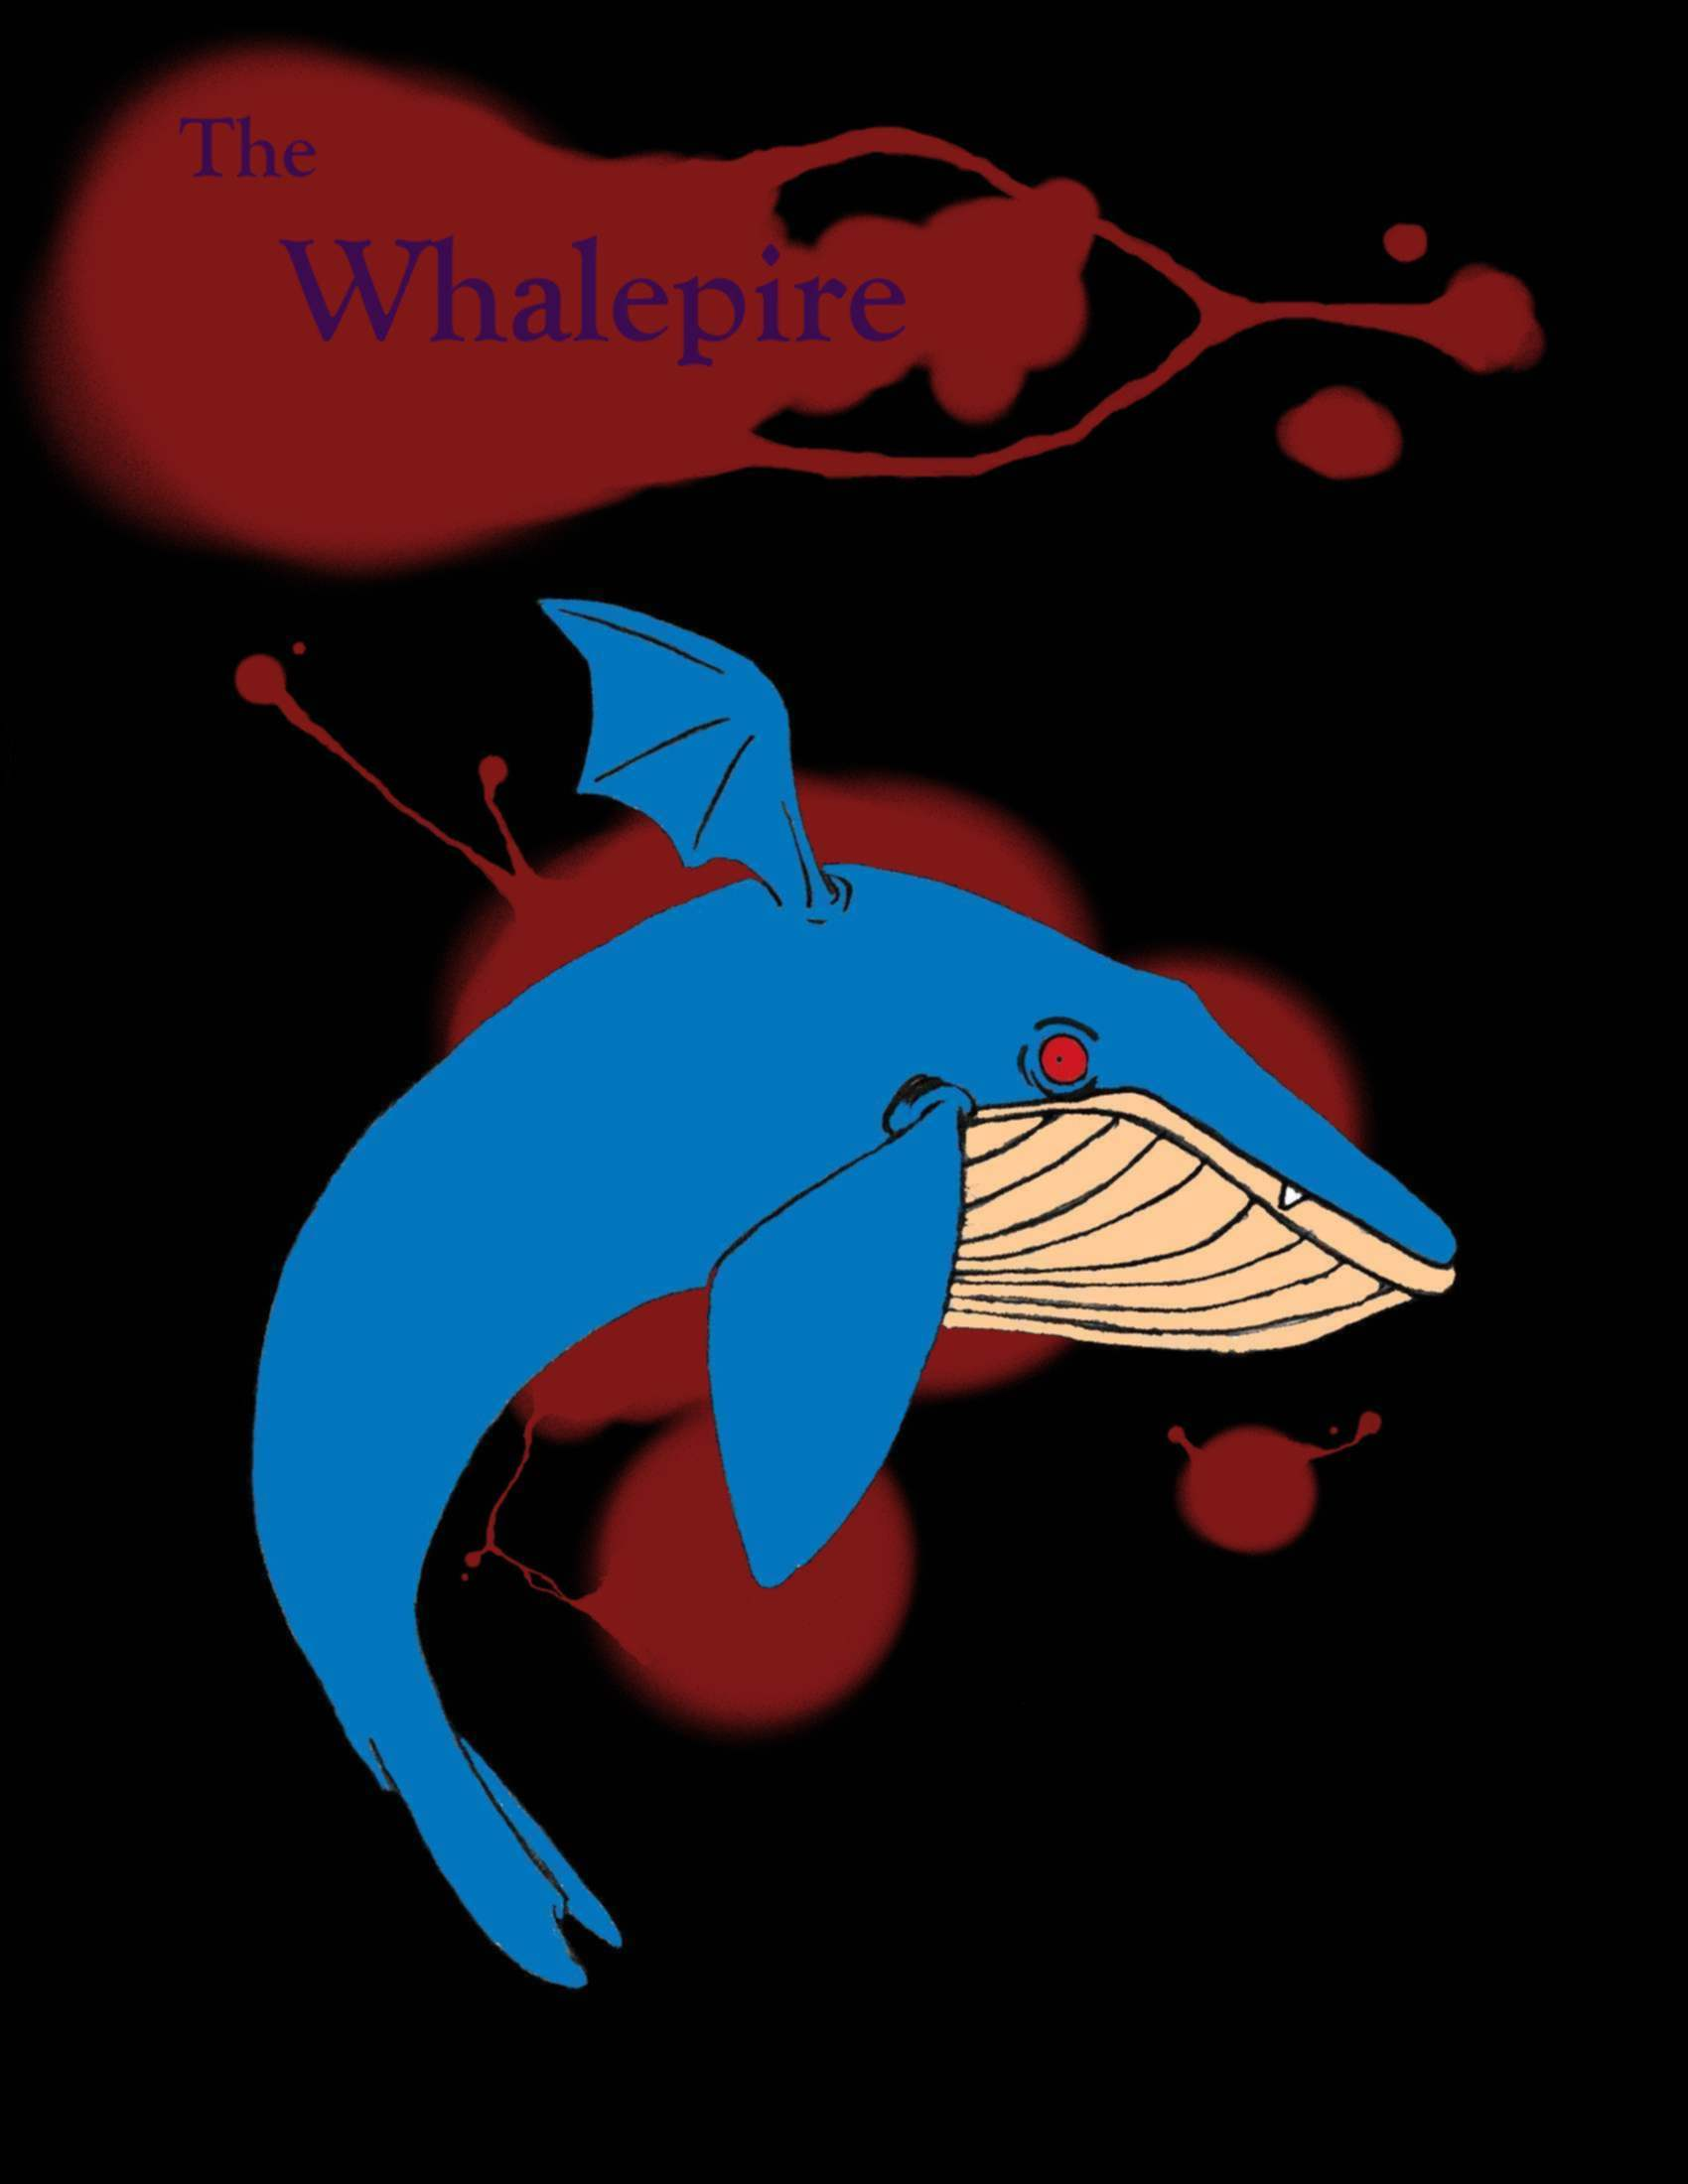 The Whalepire